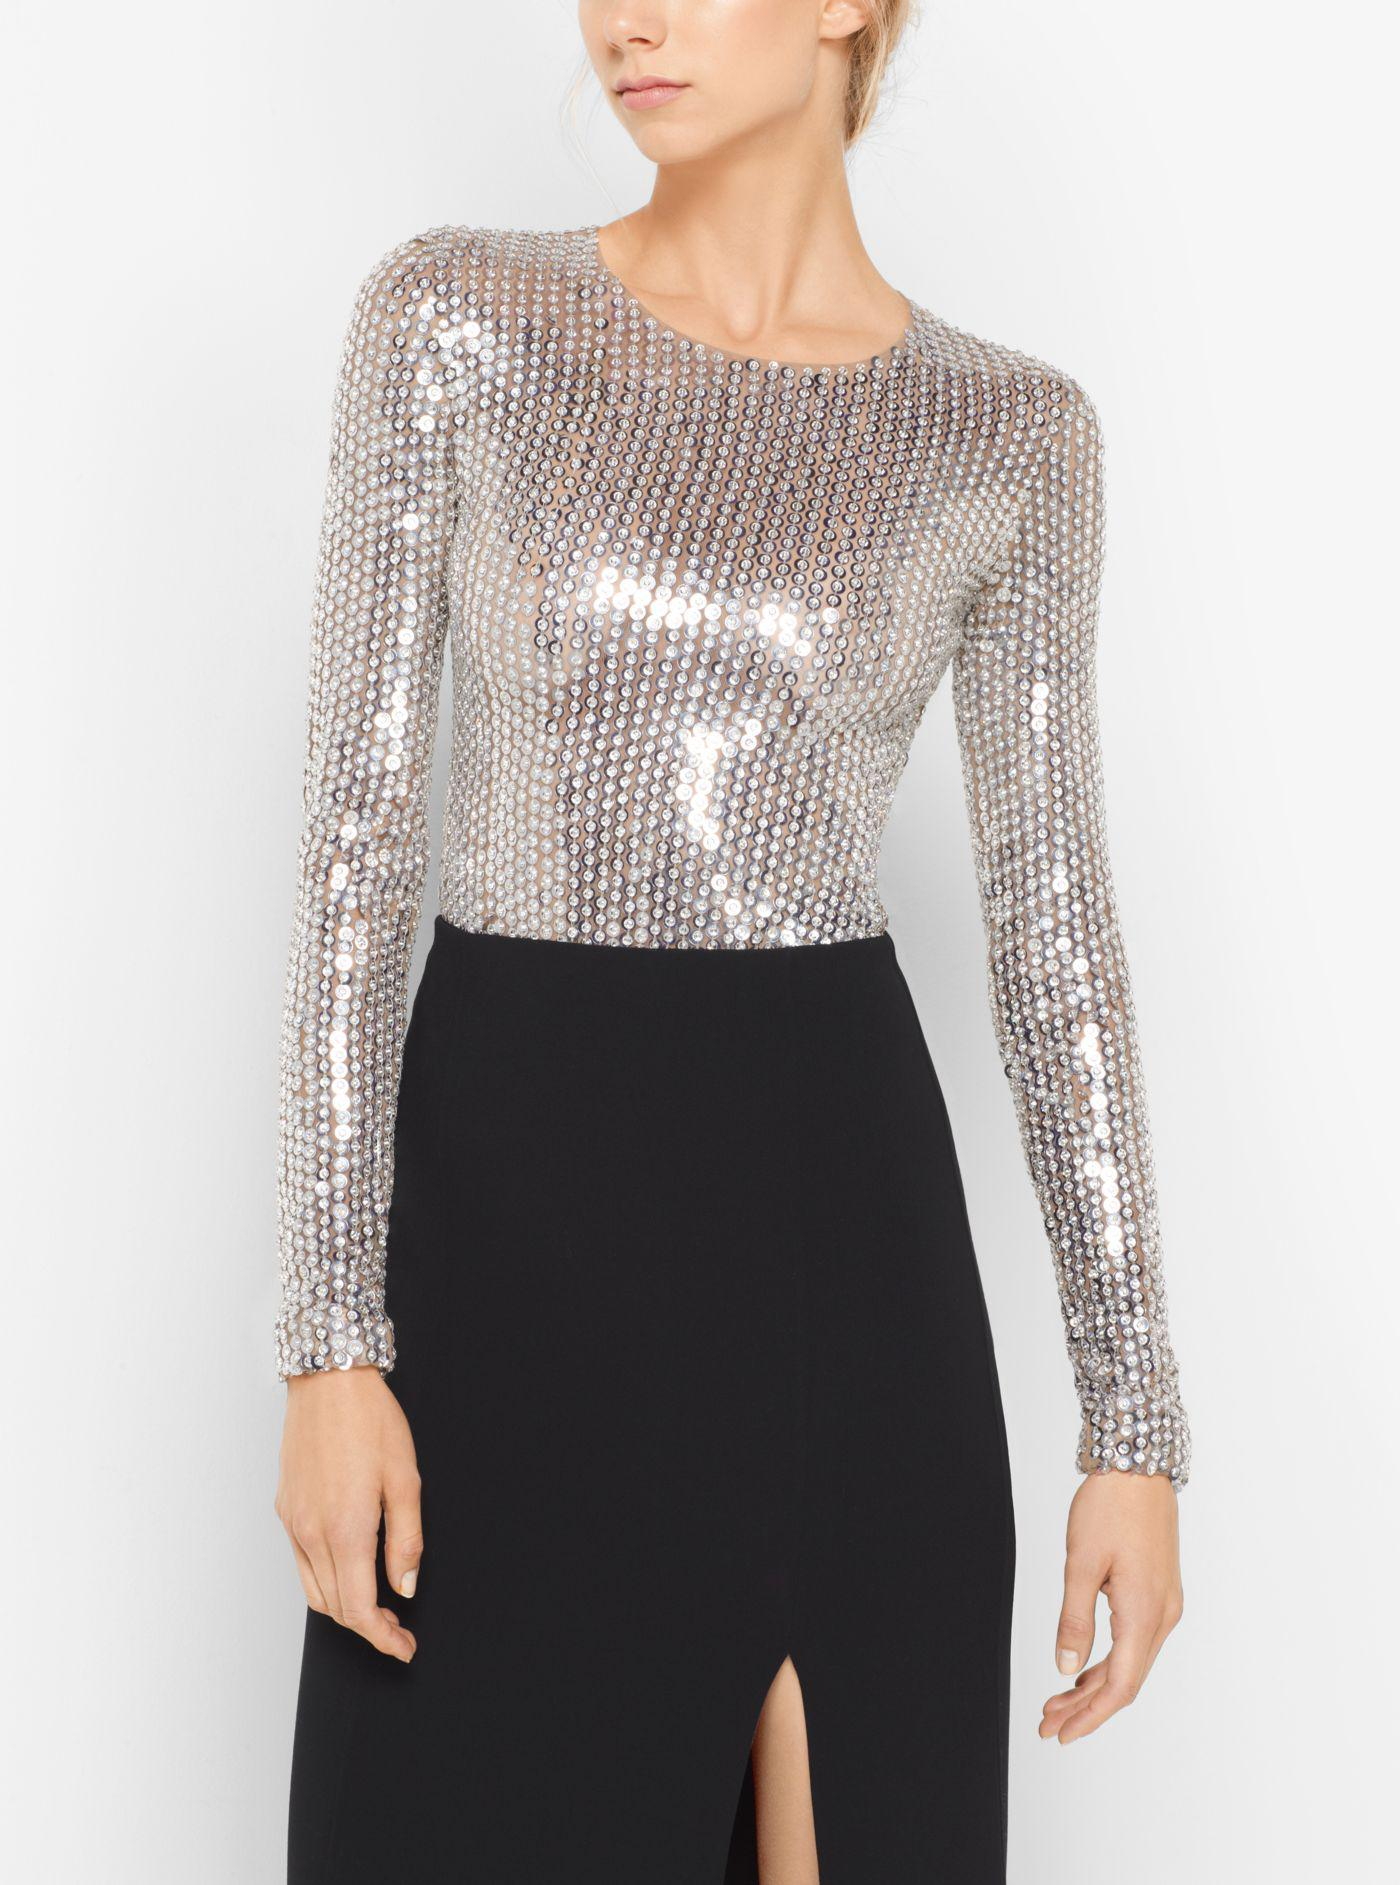 857bc0dc25 Michael Kors. Women s Sequin-embroidered Stretch-tulle Bodysuit